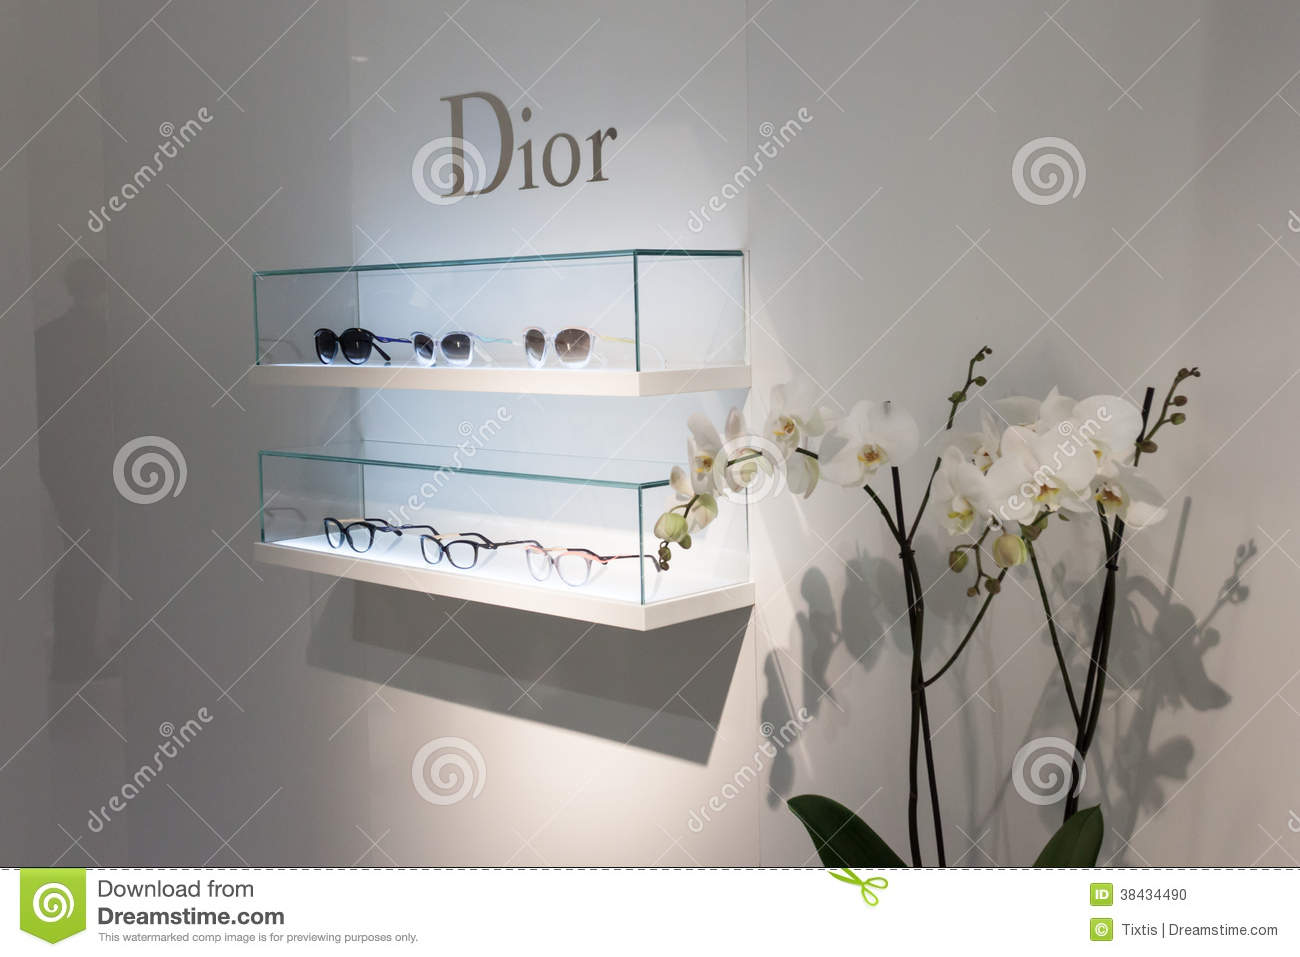 Exhibition Booth Frame : Dior glasses on display at mido in milan italy